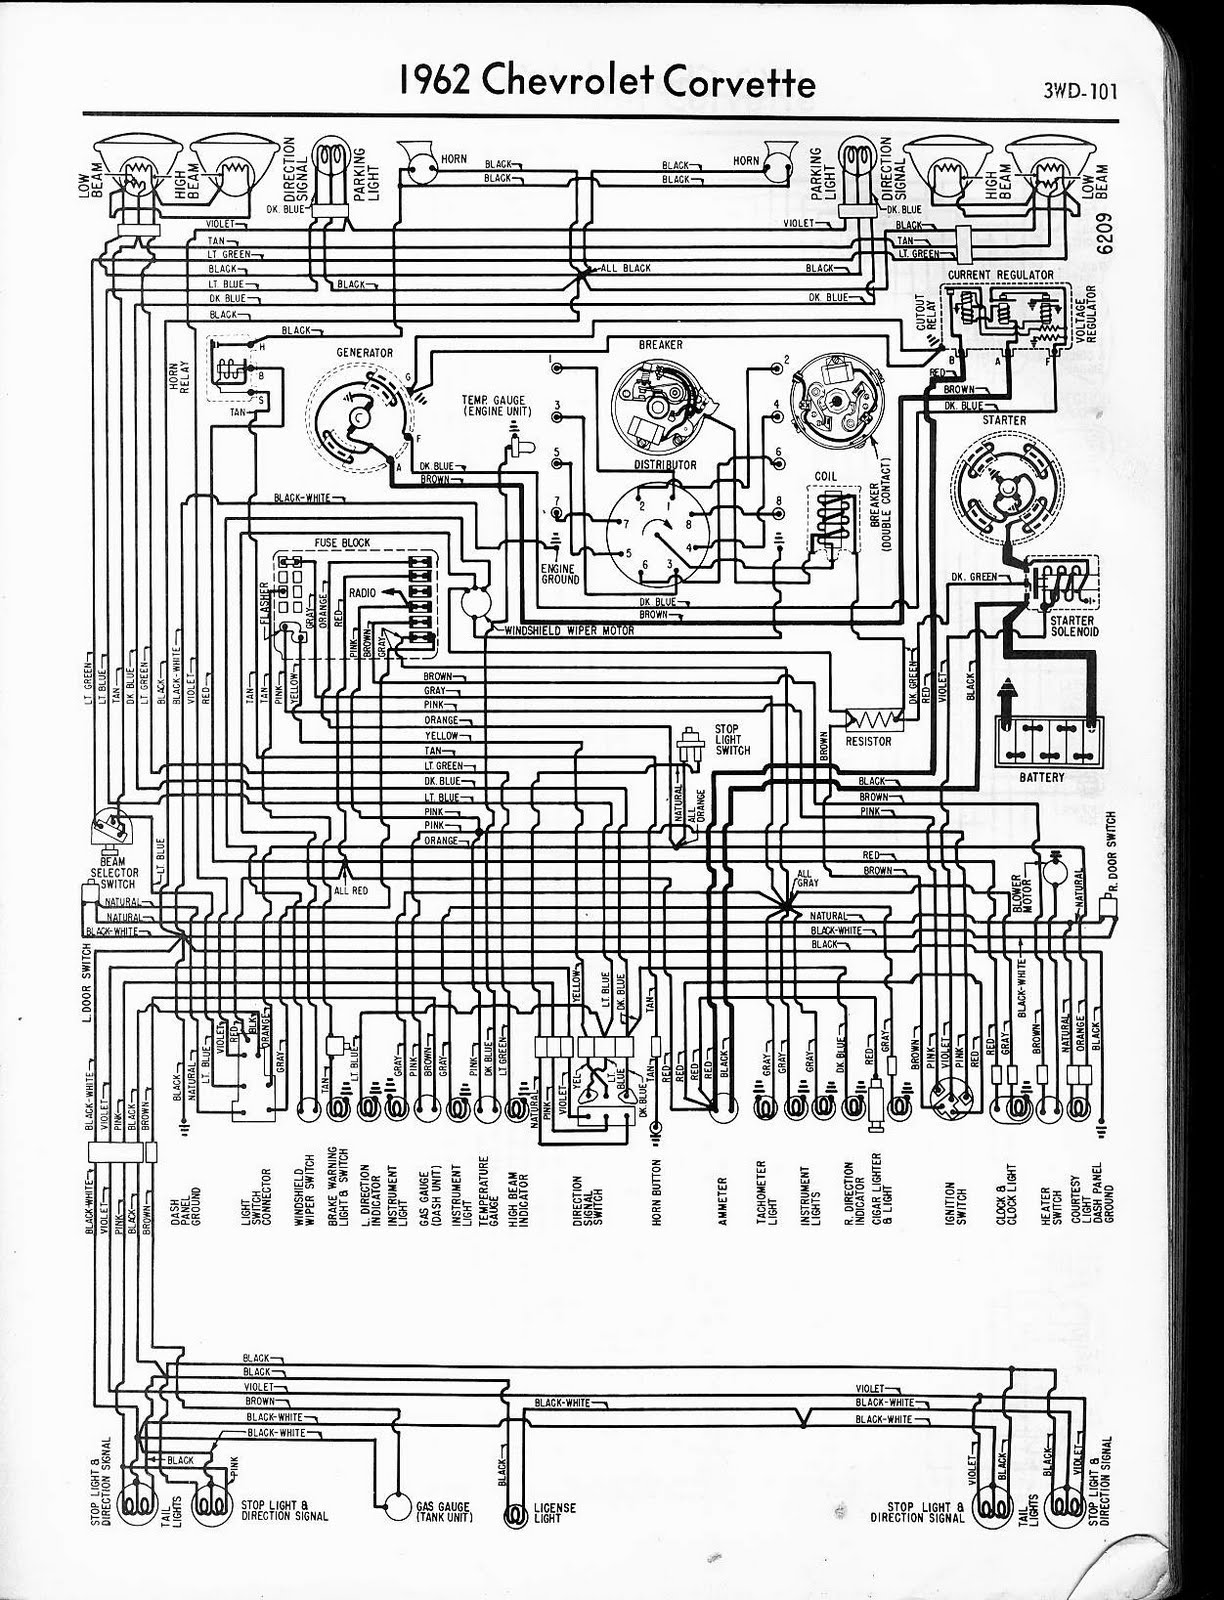 1981 corvette wiring diagram pioneer avic n2 wiring diagram, Wiring diagram